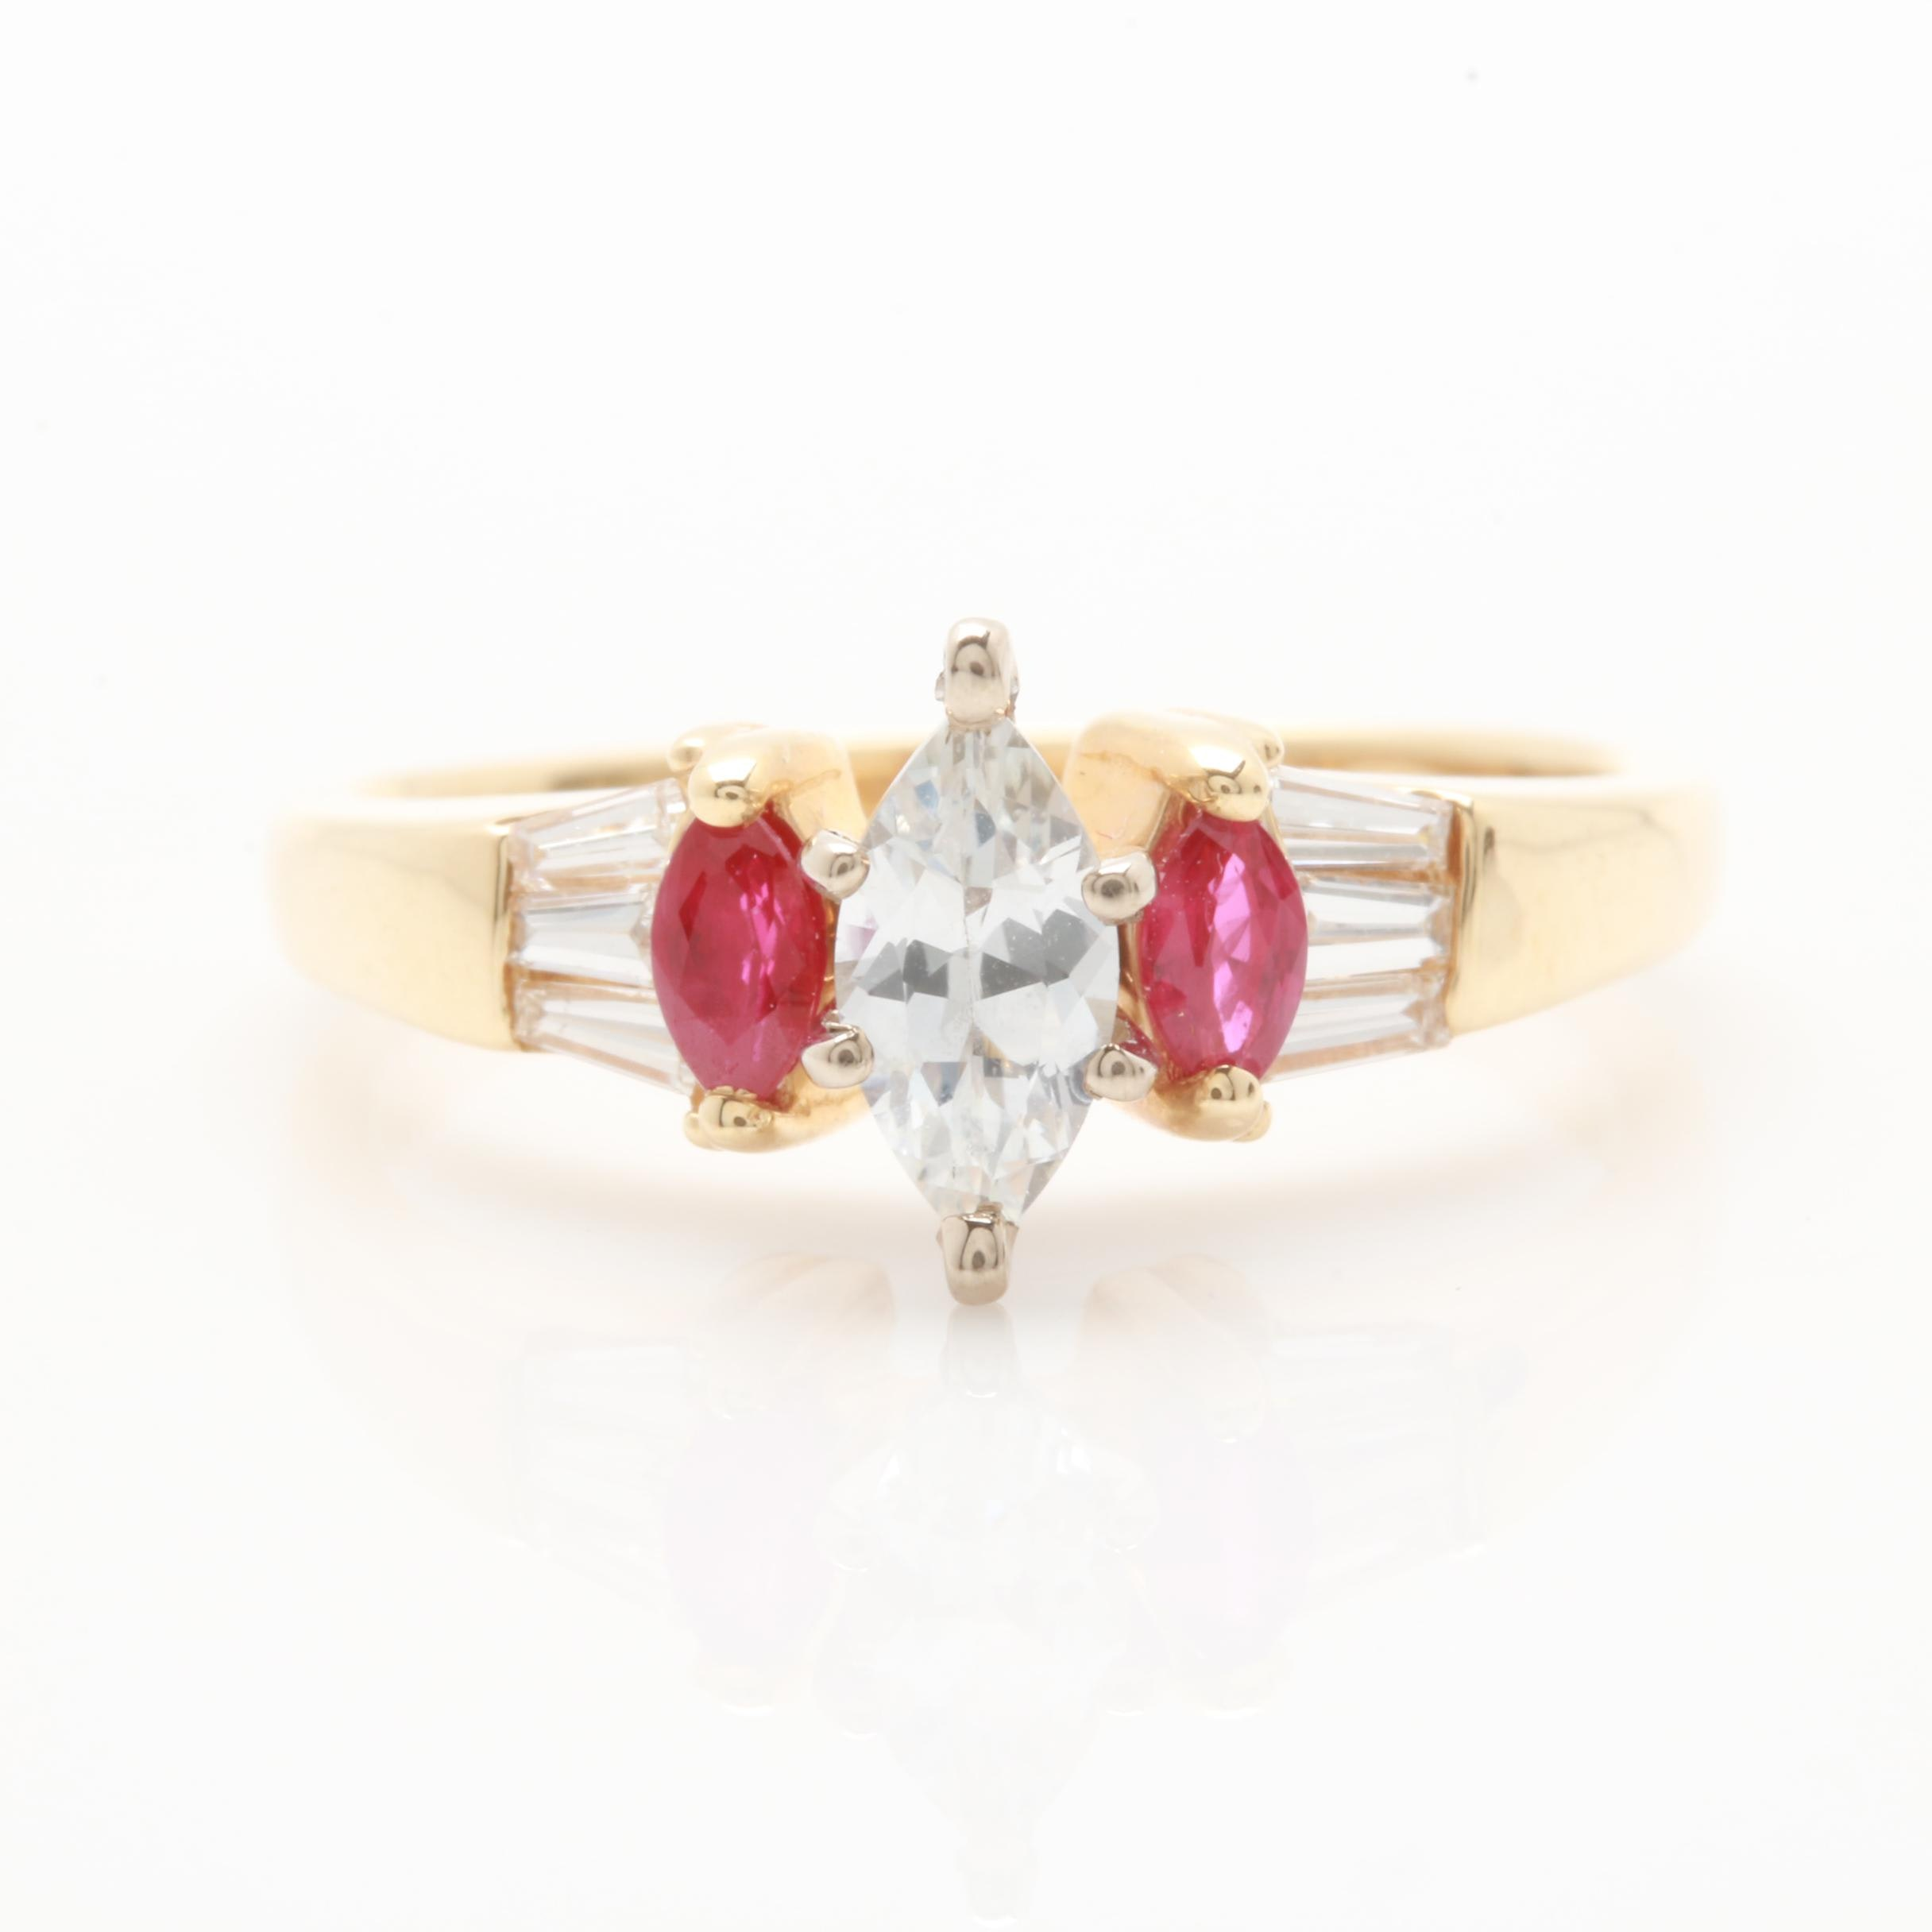 14K Yellow Gold White Sapphire, Ruby, and Diamond Ring